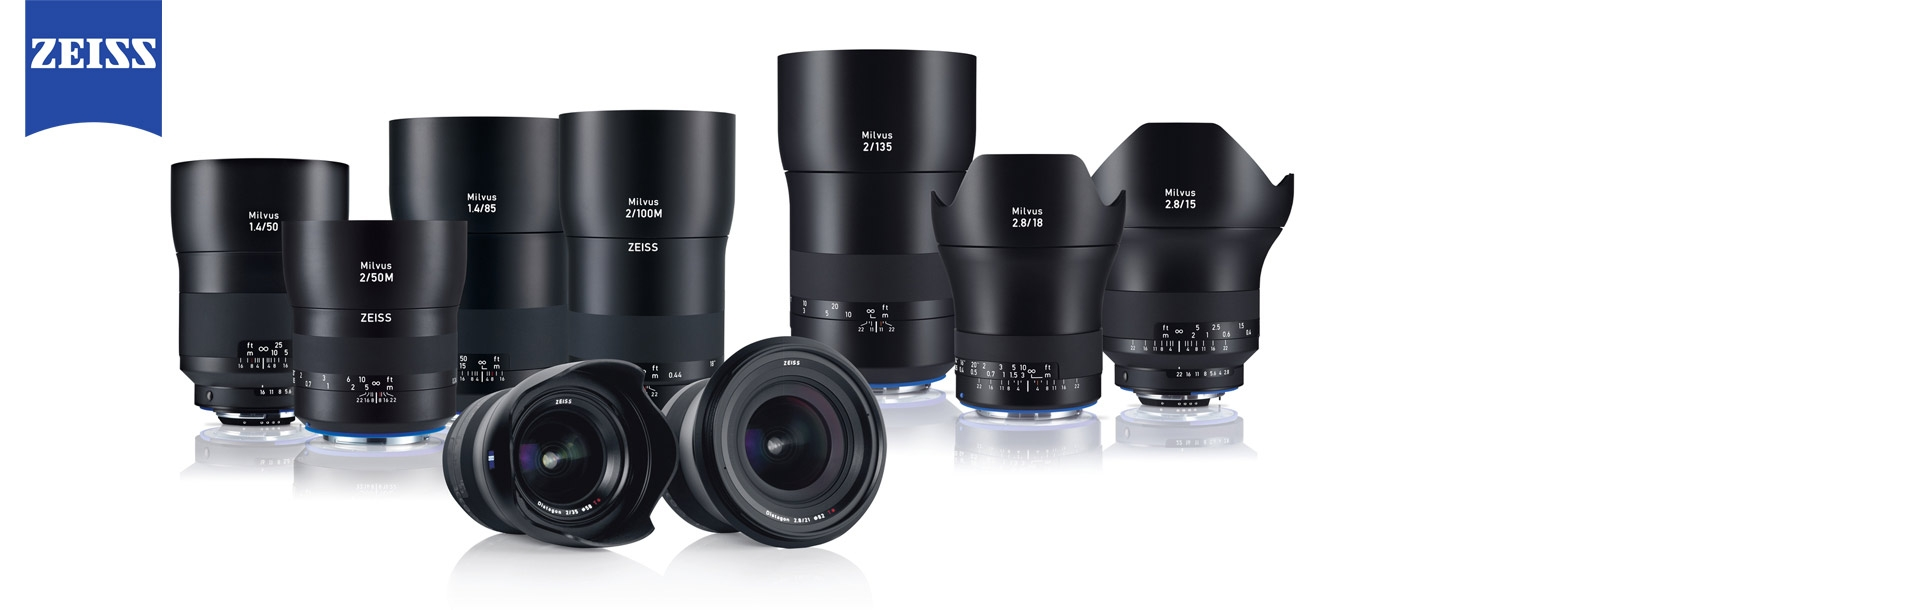 Zeiss Discover Weeks Promotion (Up to £200 off)